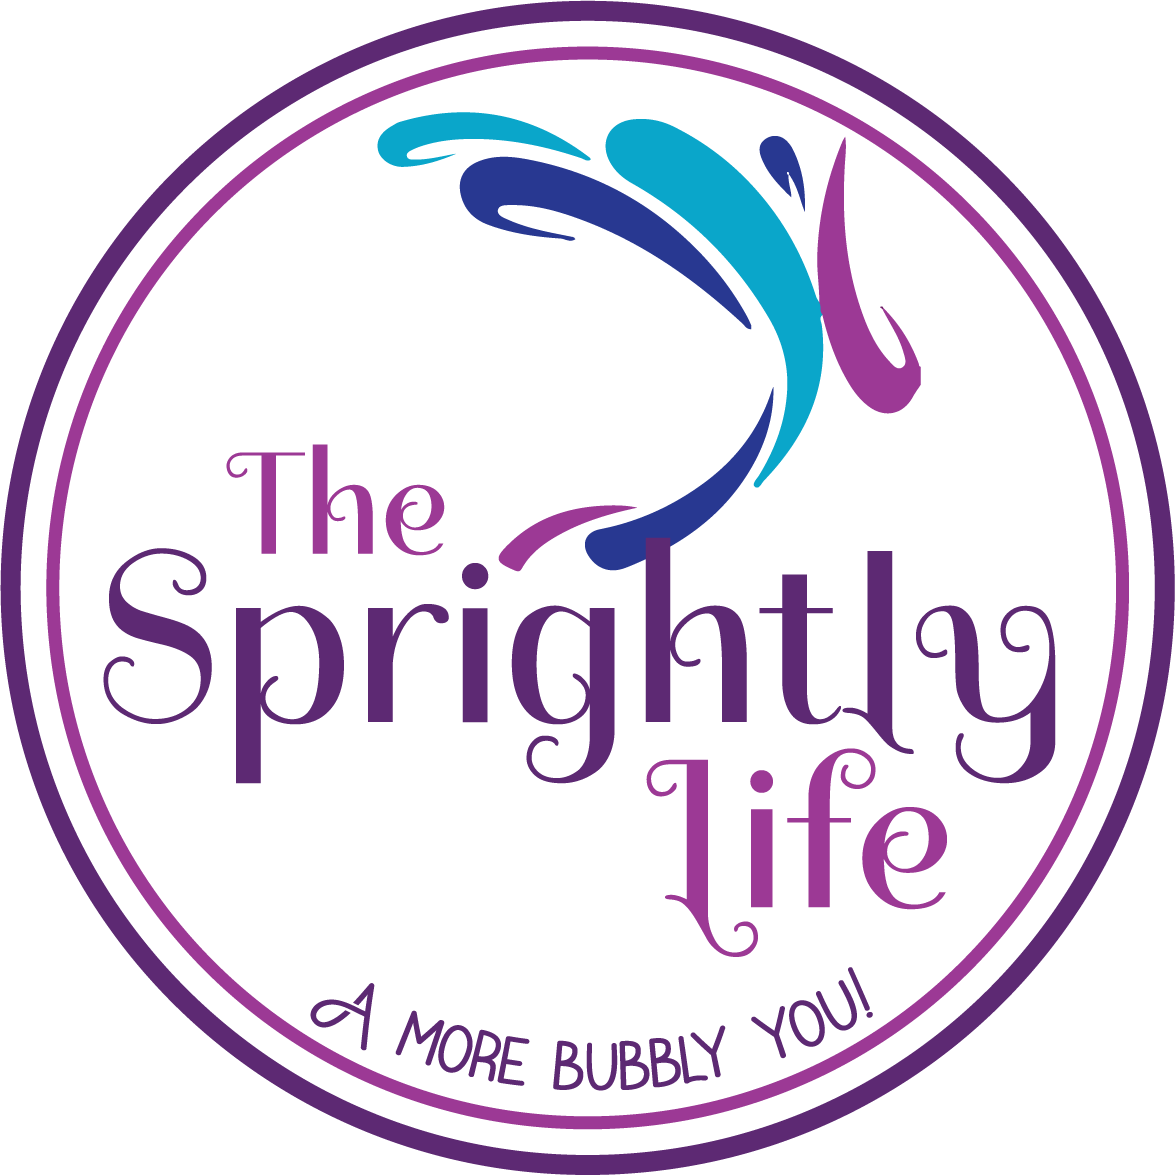 The+Sprightly+Life_Logo_Final_White